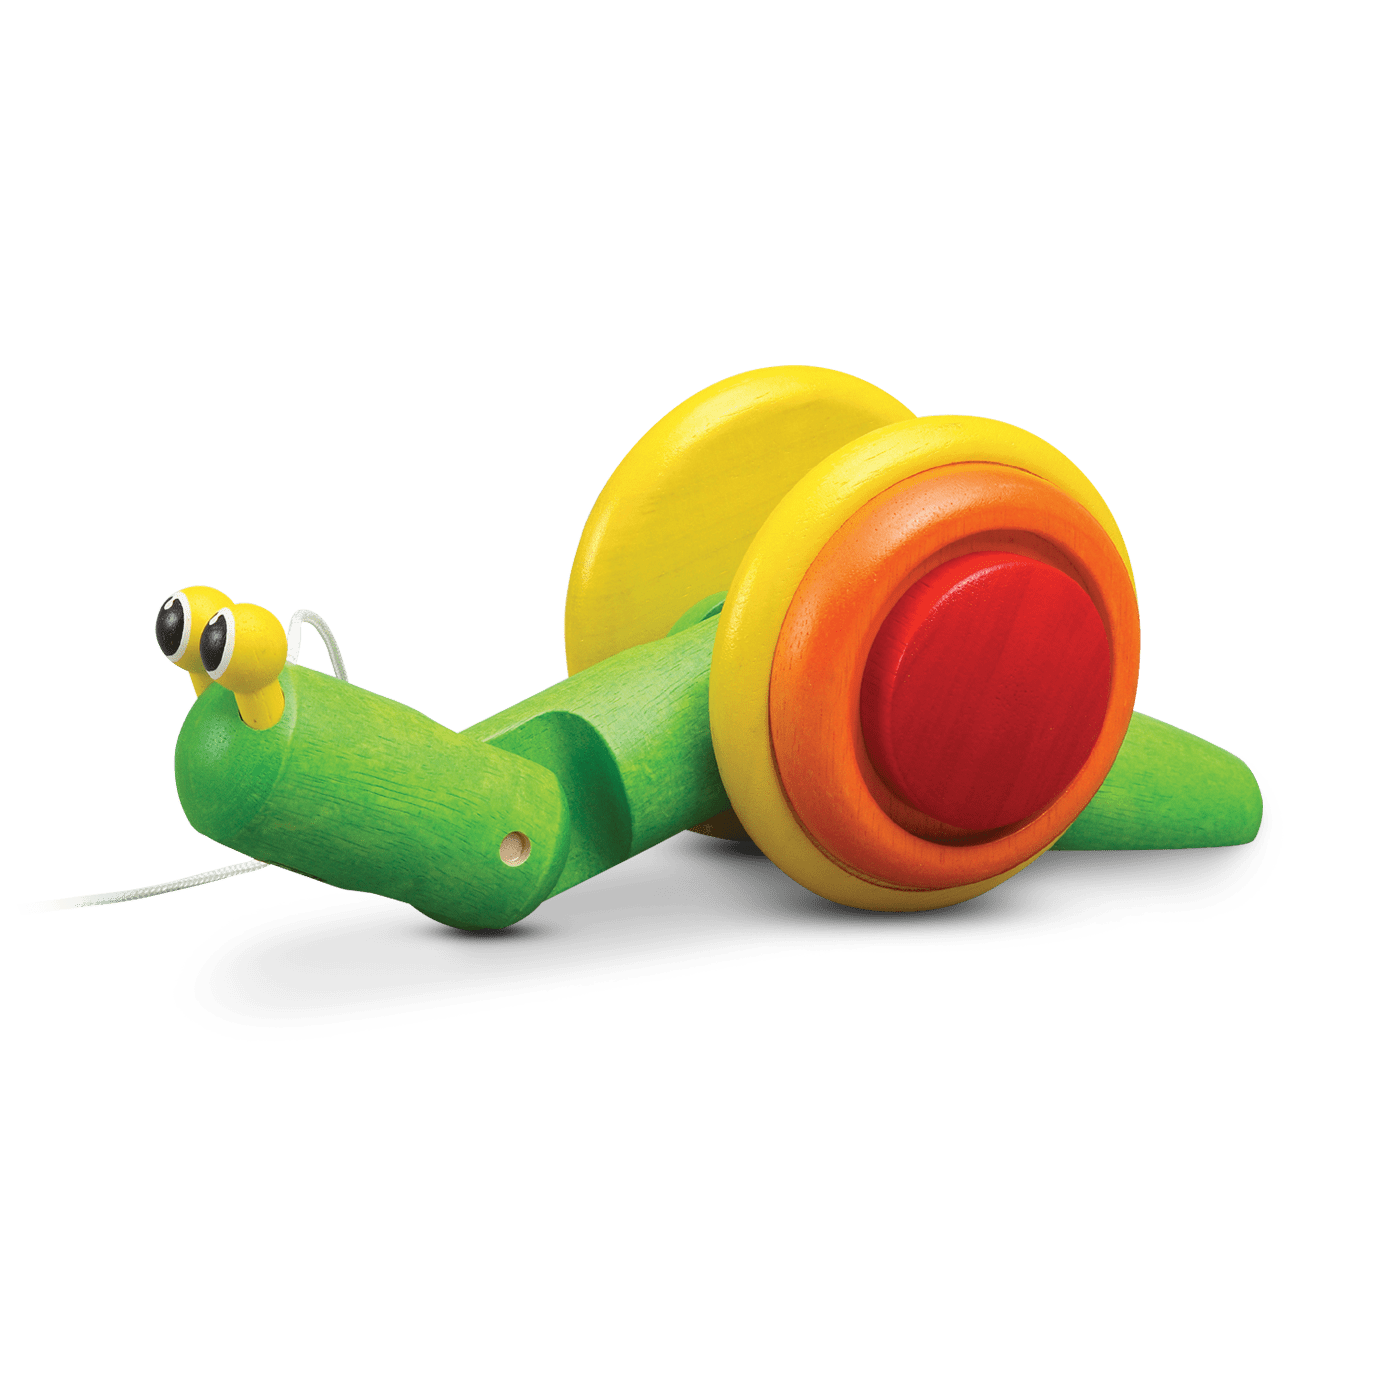 5108_PlanToys_PULL-ALONG_SNAIL_Push_and_Pull_Coordination_Imagination_Language_and_Communications_Gross_Motor_12m_Wooden_toys_Education_toys_Safety_Toys_Non-toxic_0.png